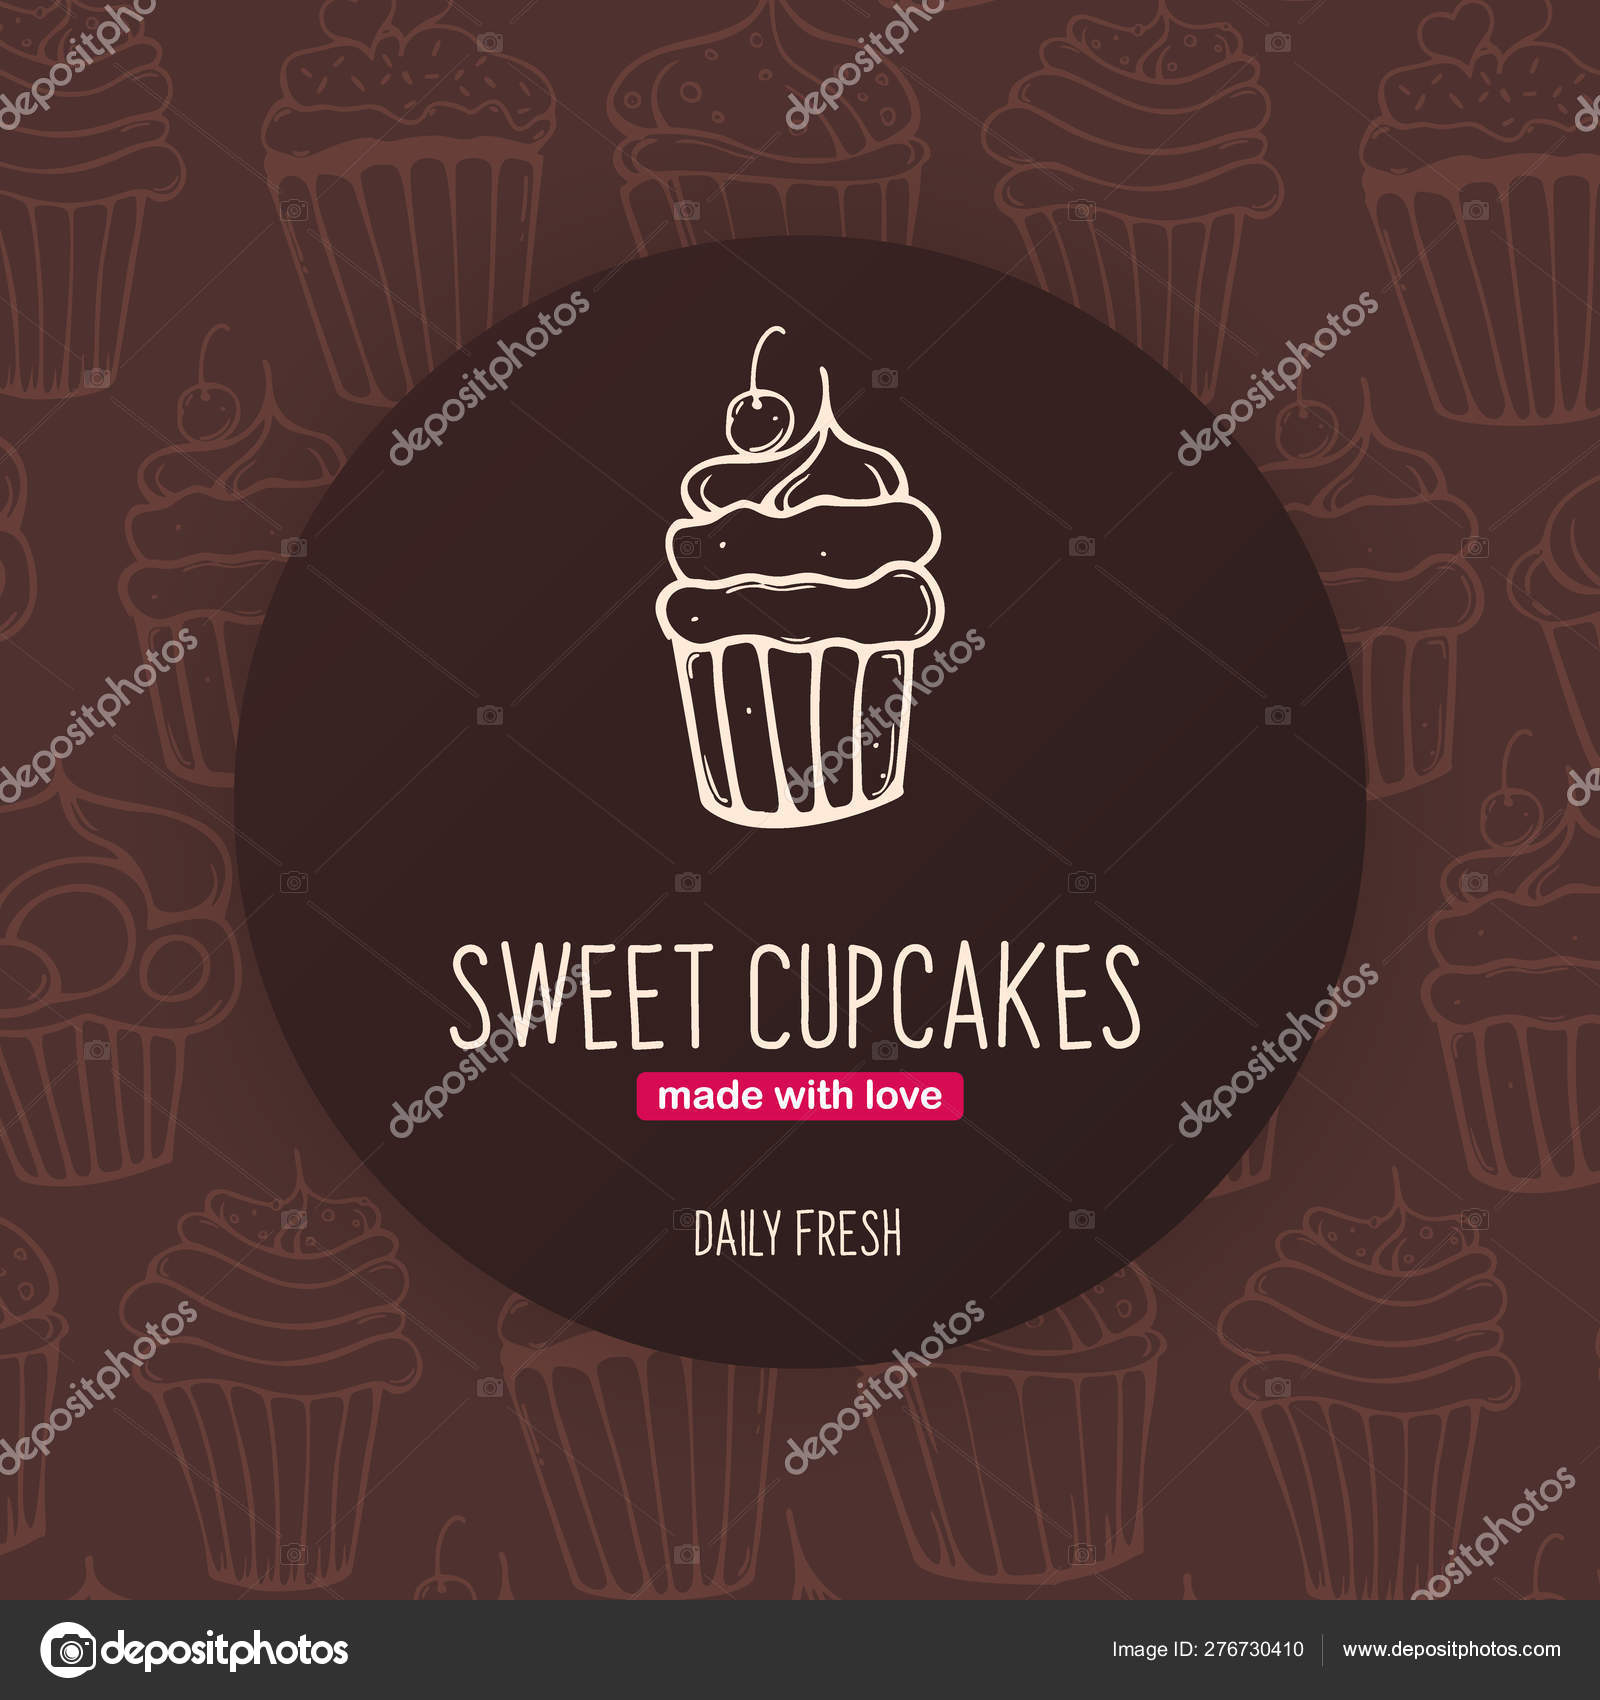 Cupcakes and Cakes banner with sketches hand drawing background.